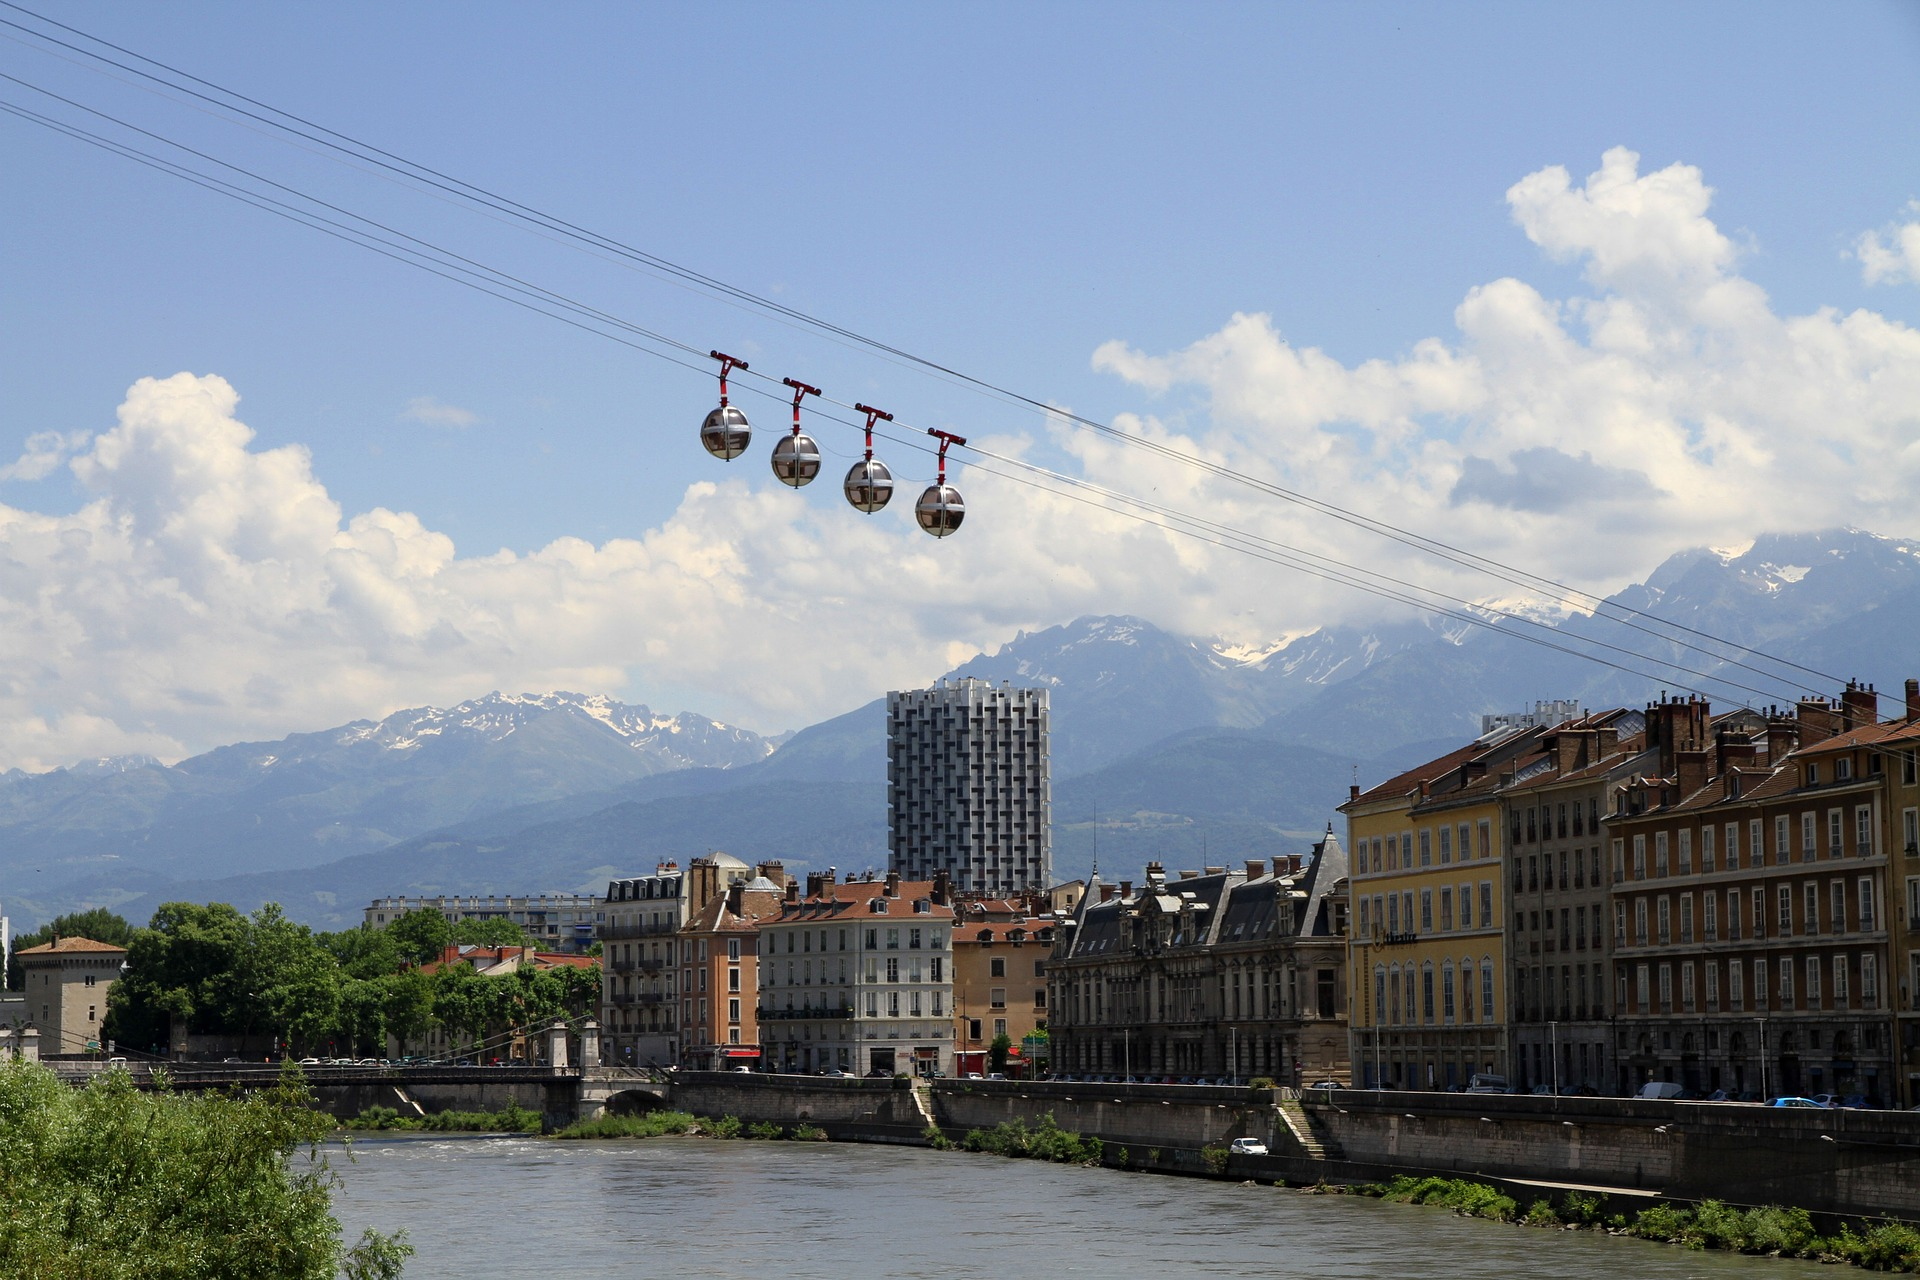 The city of Grenoble, the Alps in the distance